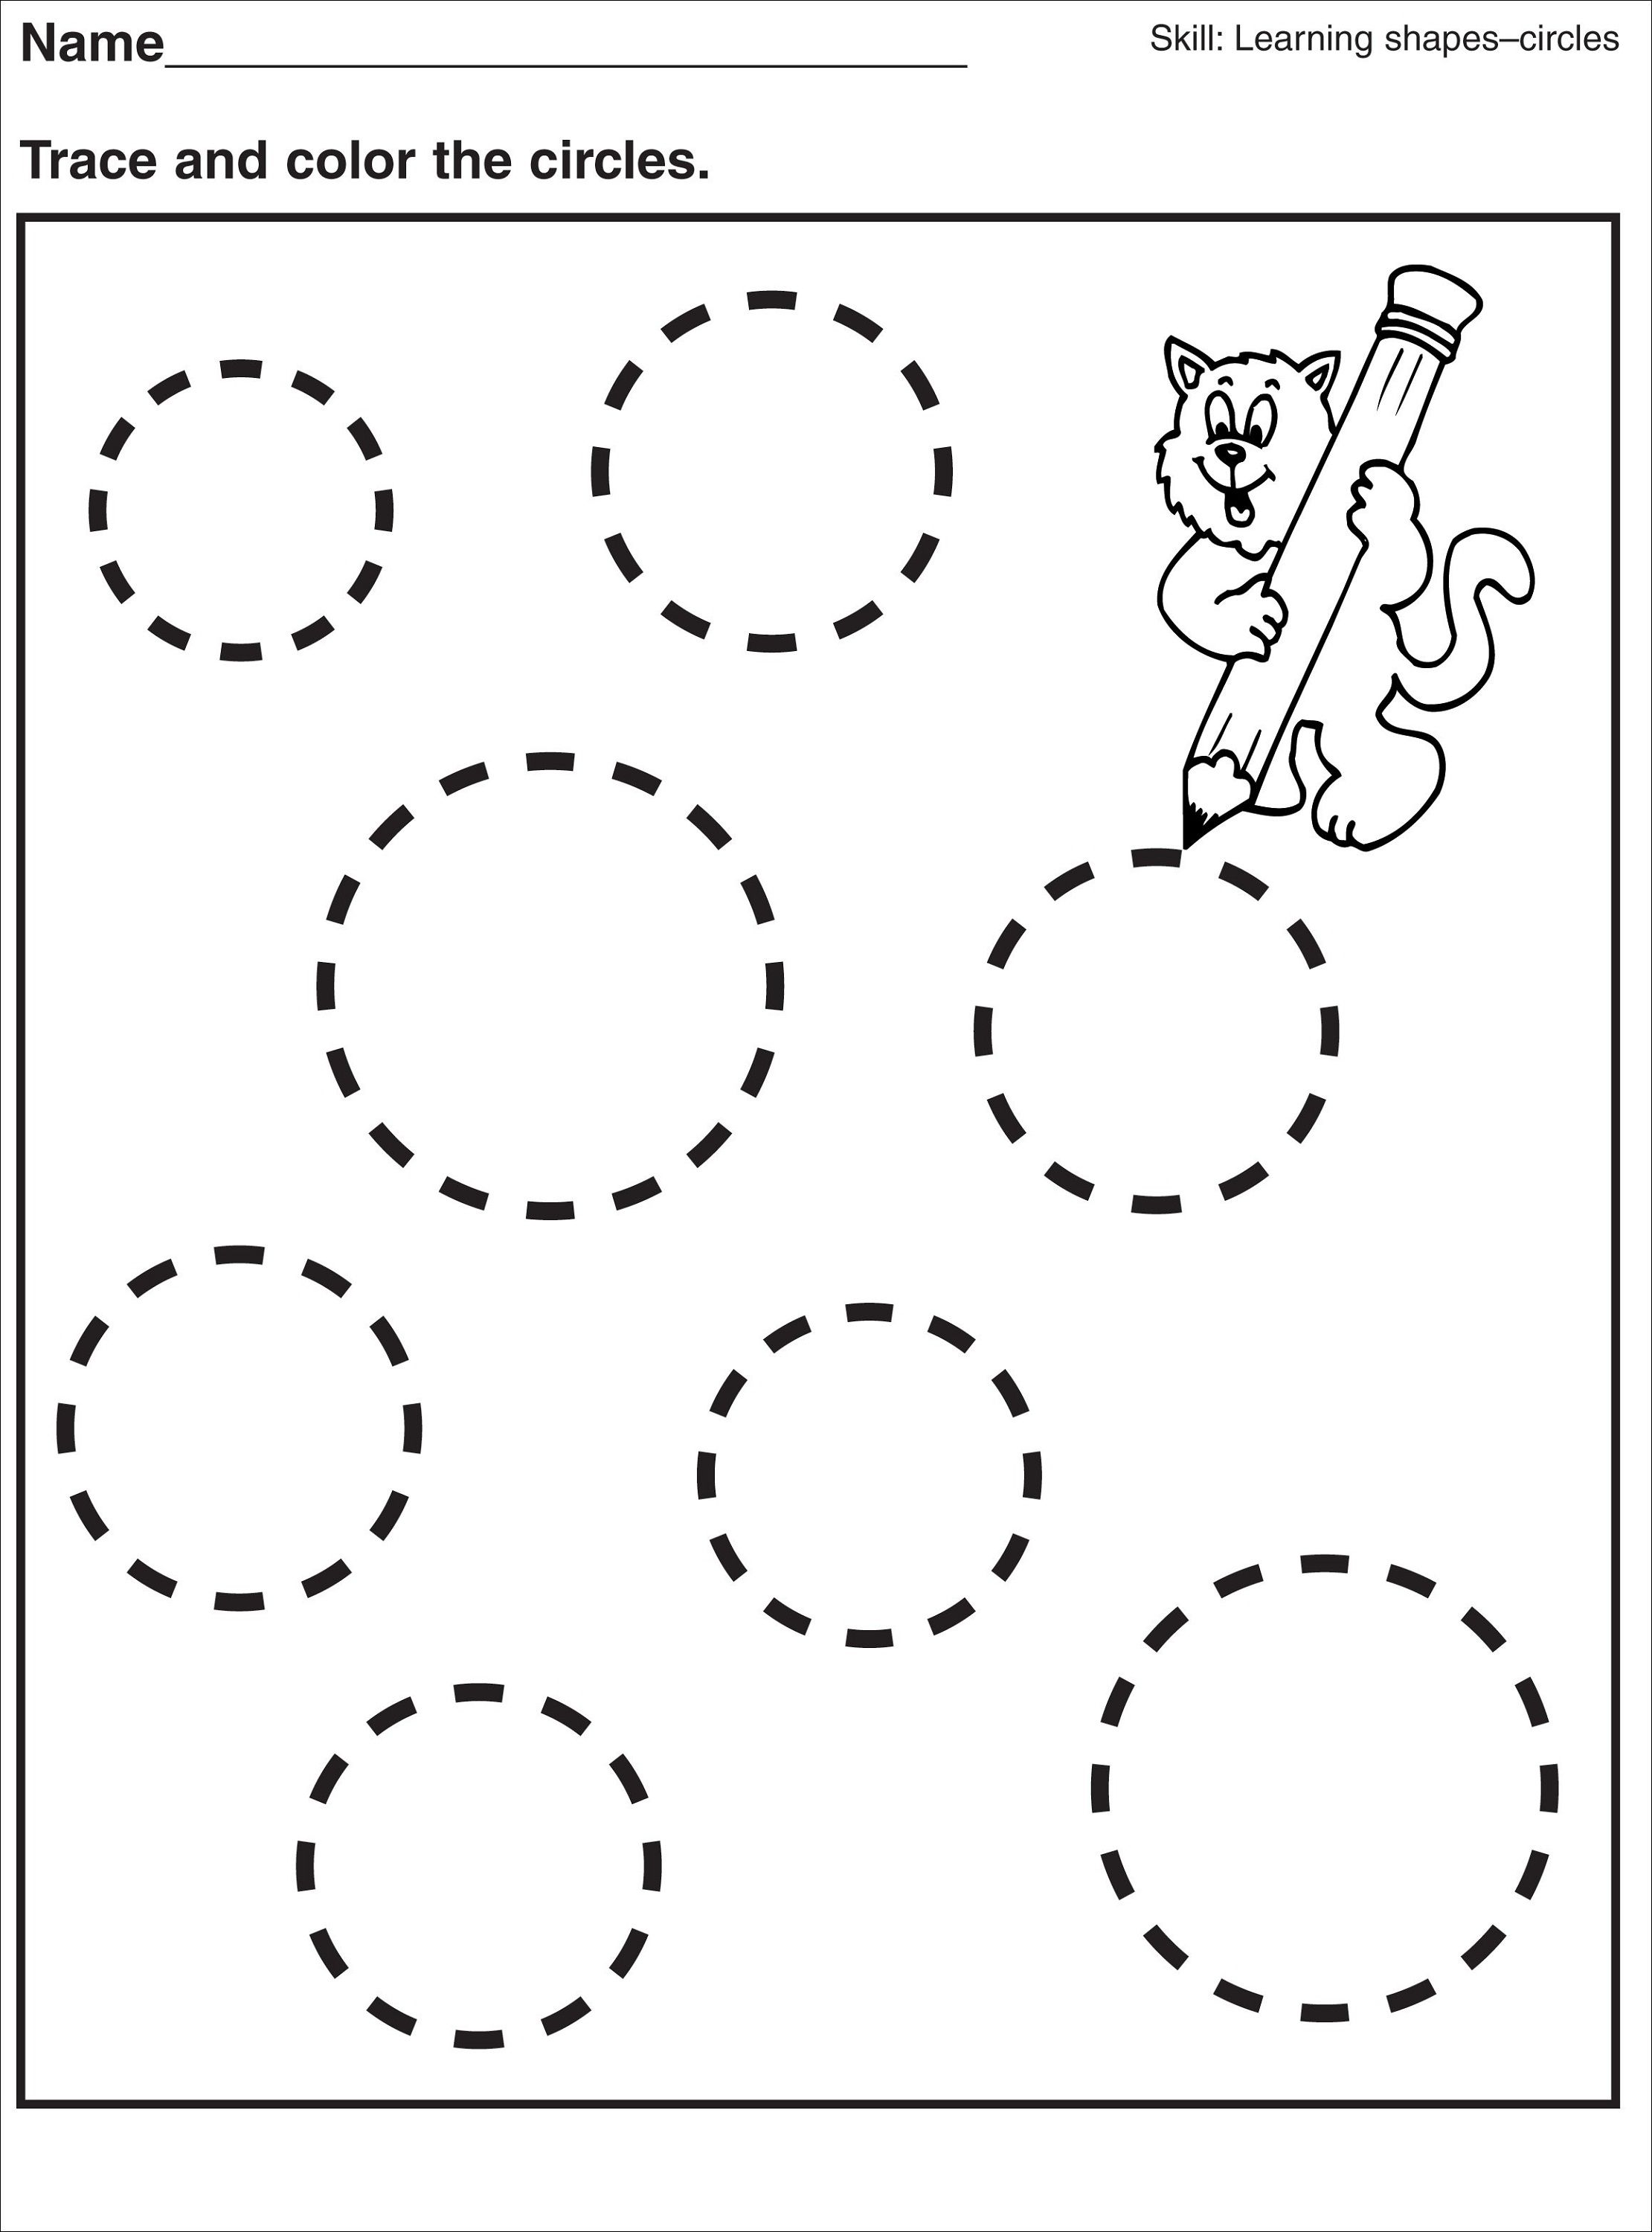 worksheet Area Of A Circle Worksheet tracing circle worksheets for preschool activity shelter kids shelter